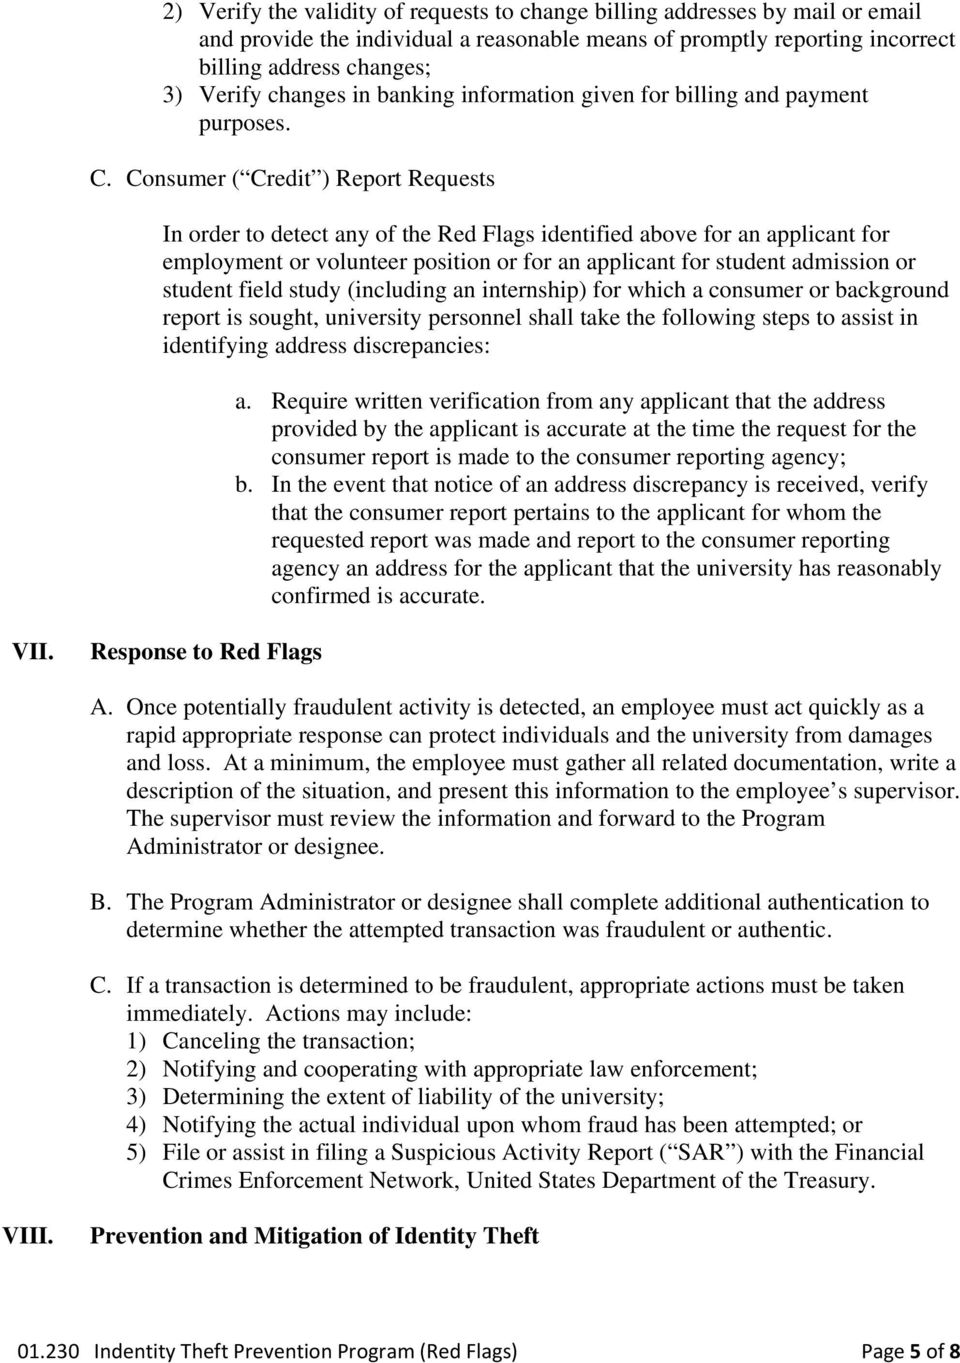 Consumer ( Credit ) Report Requests In order to detect any of the Red Flags identified above for an applicant for employment or volunteer position or for an applicant for student admission or student